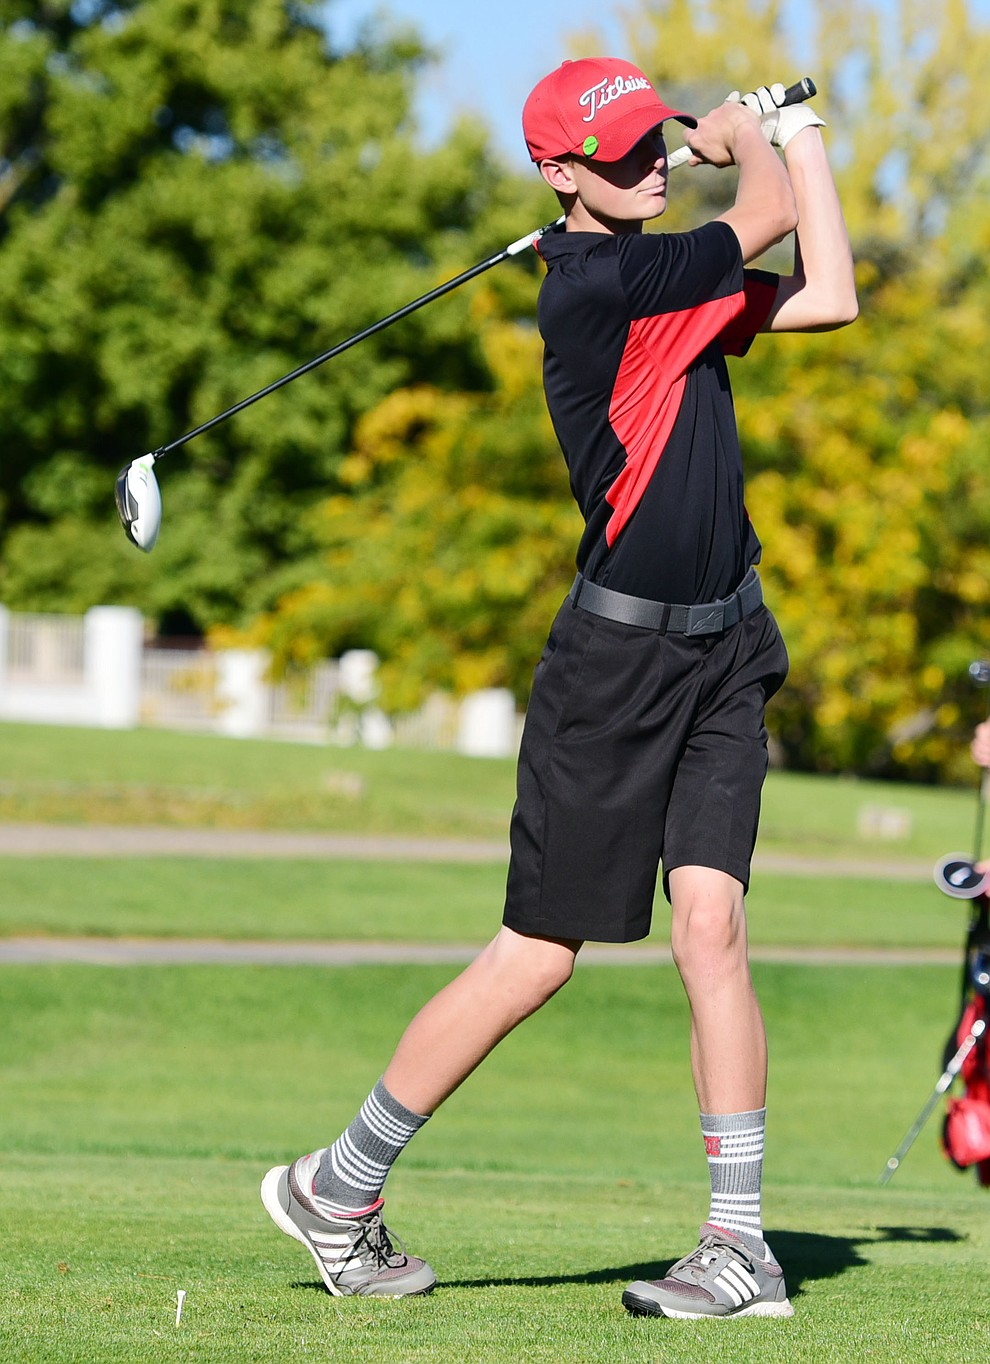 Bradshaw Mountain's #4 Jordan Hill tees off in a home match against Prescott, Mingus Union and Mohave Academy High Schools Tuesday, October 11, 2017 at Prescott Golf and Country Club. (Les Stukenberg/The Daily Courier)